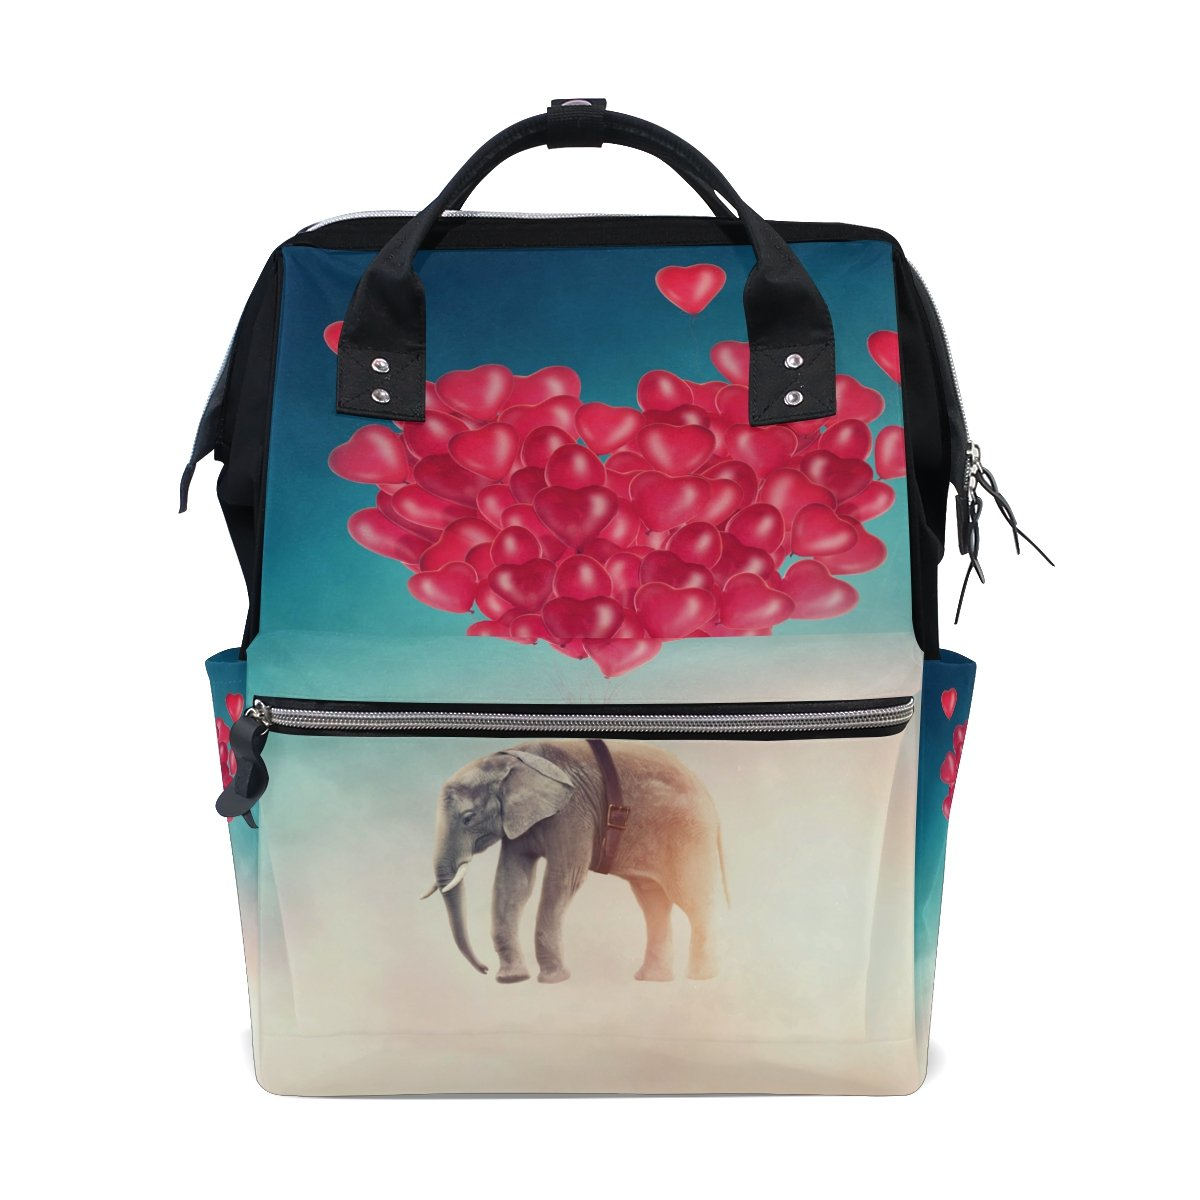 WOZO Sky Indian Elephant Flying with Balloon Multi-function Diaper Bags Backpack Travel Bag